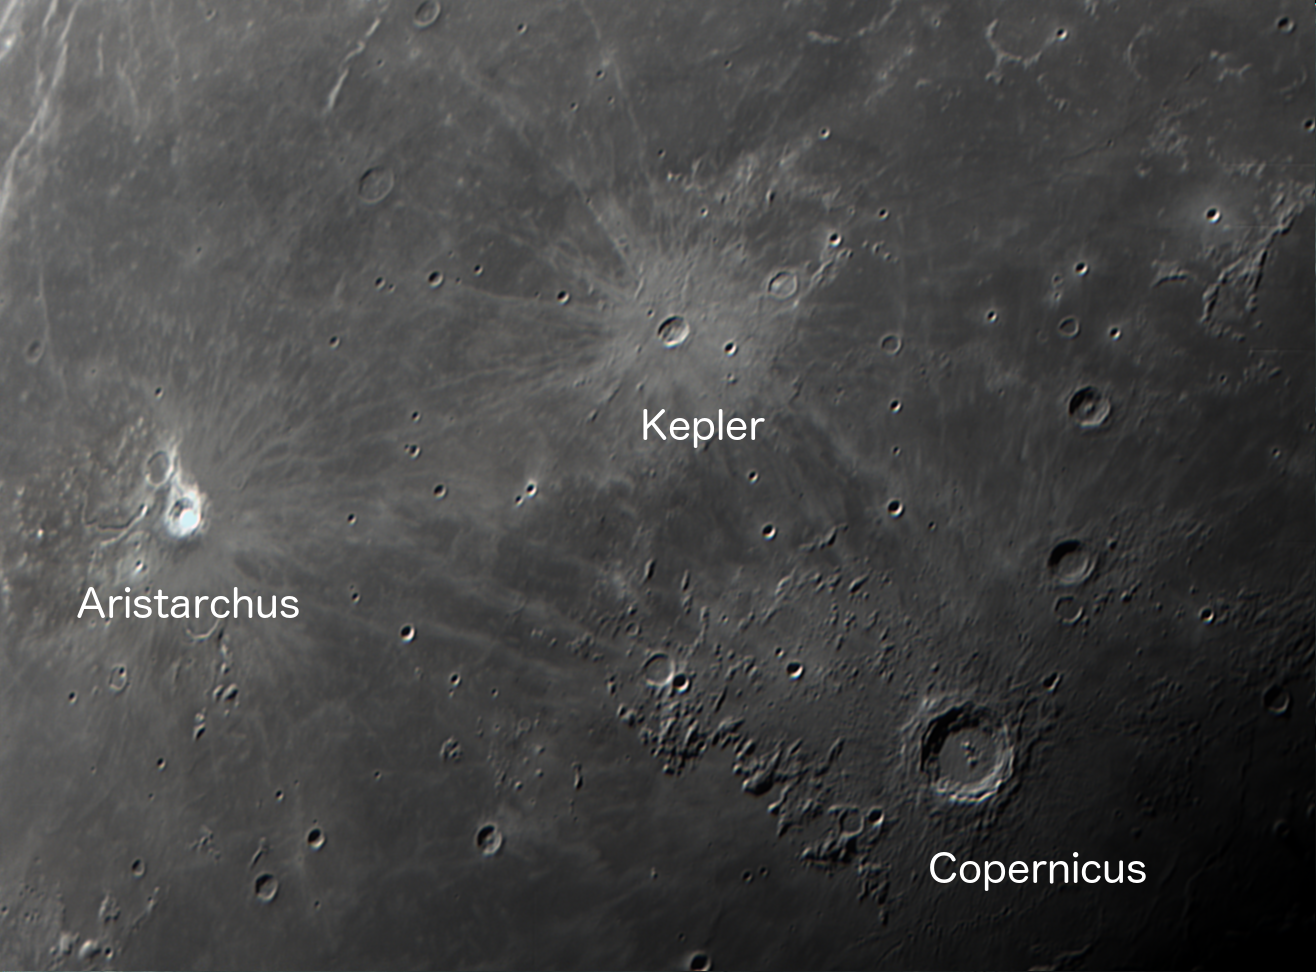 Lunar craters Aristarchus, Kepler, and Copernicus, imaged with a ZWO 224ACI camera and Celestron 8SE telescope.